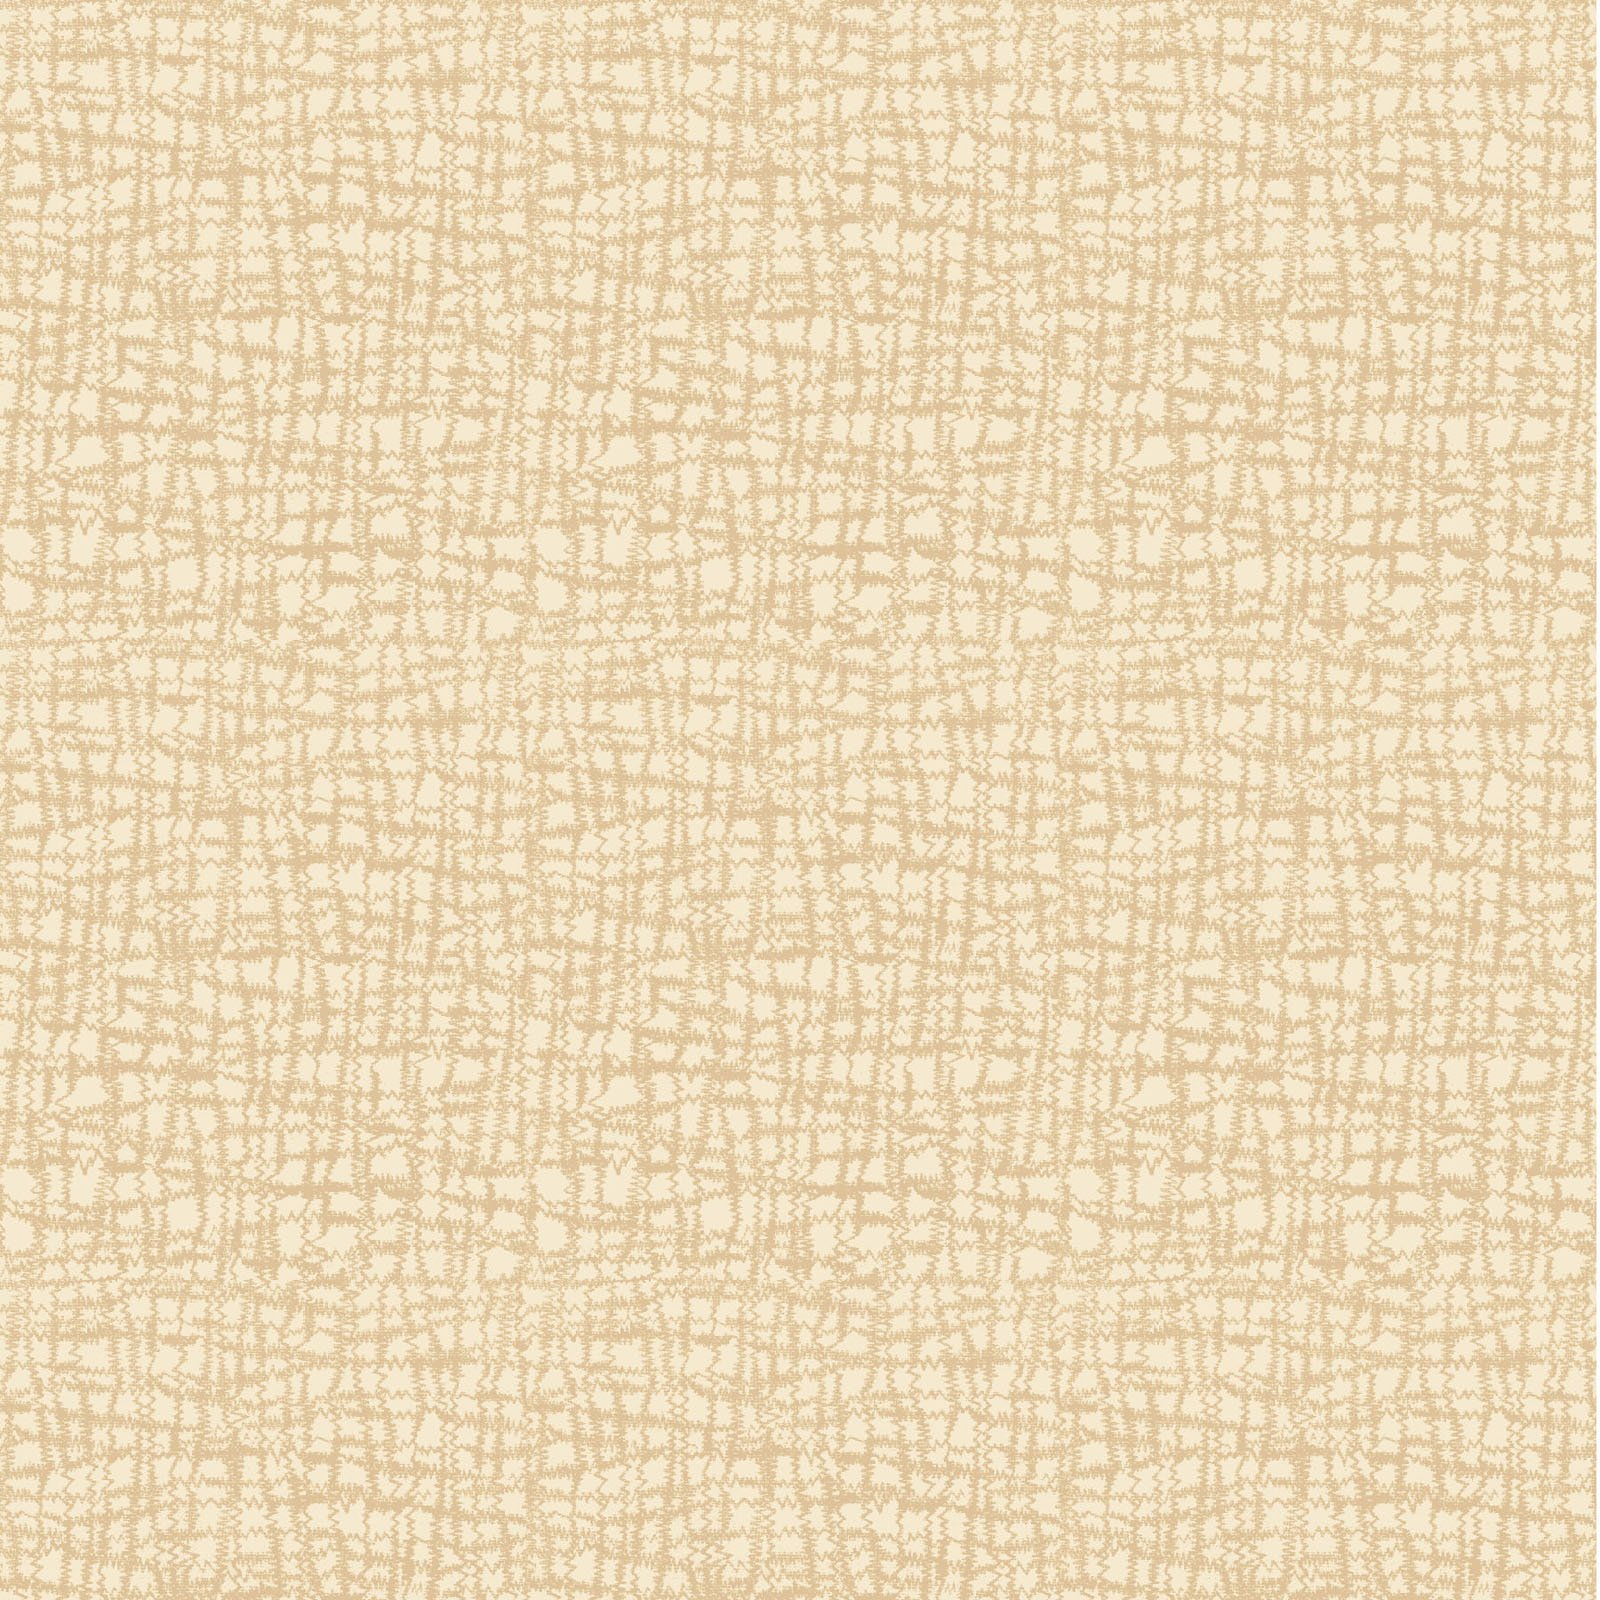 AC17-3129 W - APPLE CIDER 17 BY P&B BOUTIQUE TEXTURE WHITE